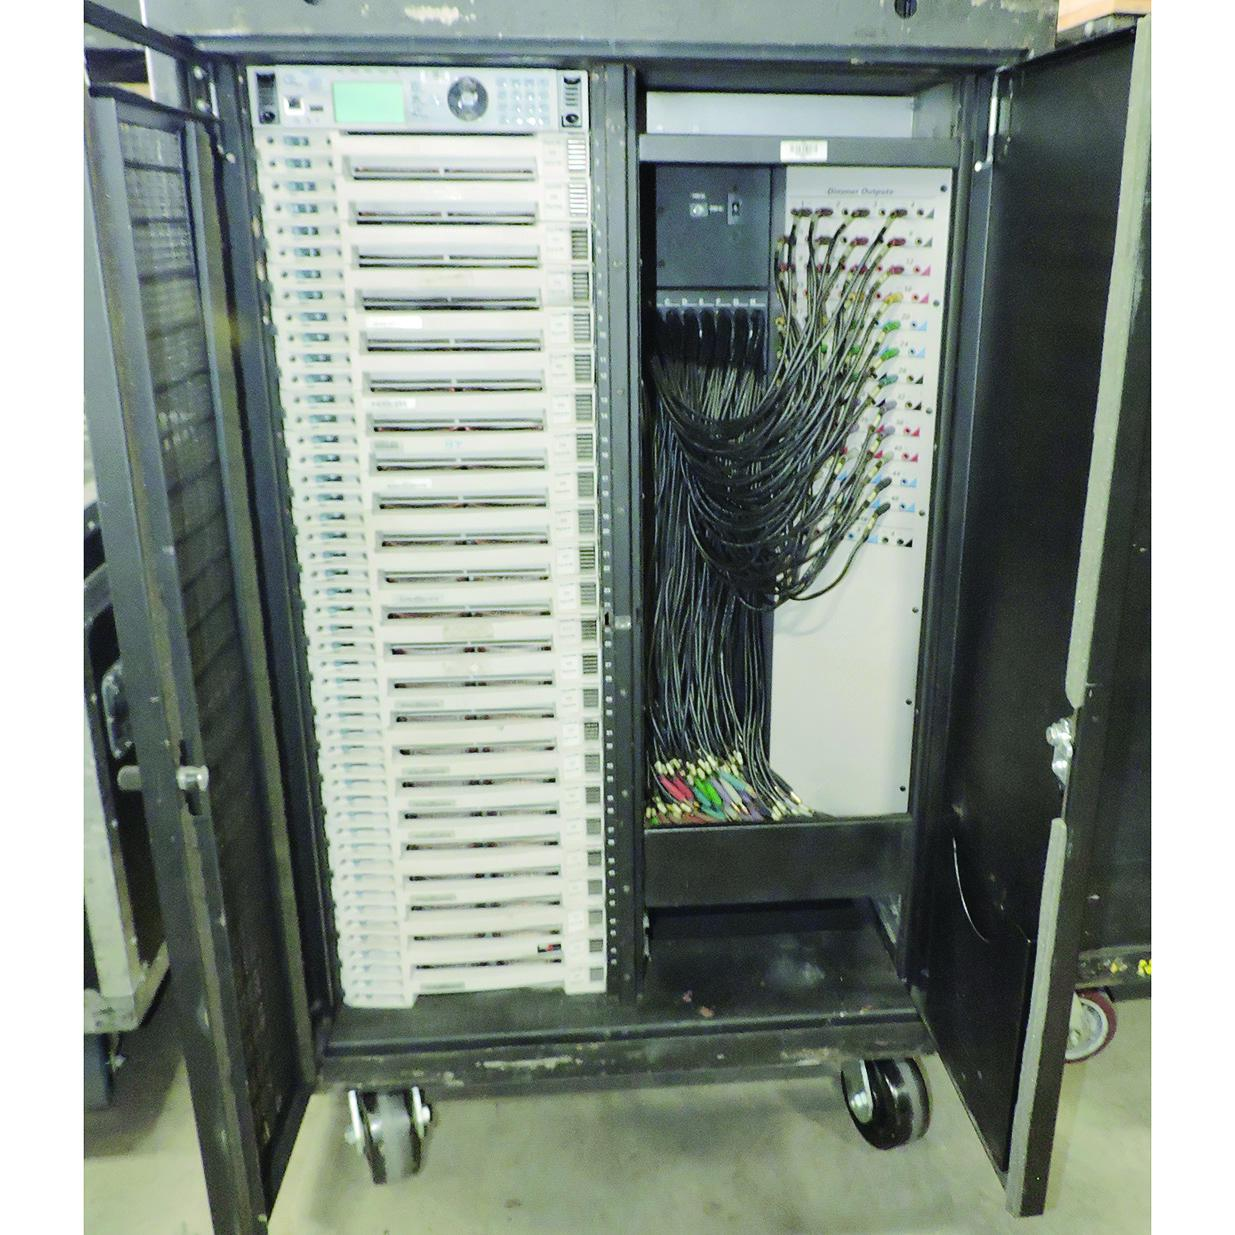 Etc Dimmer Rack 48 Channel Related Keywords & Suggestions - Etc